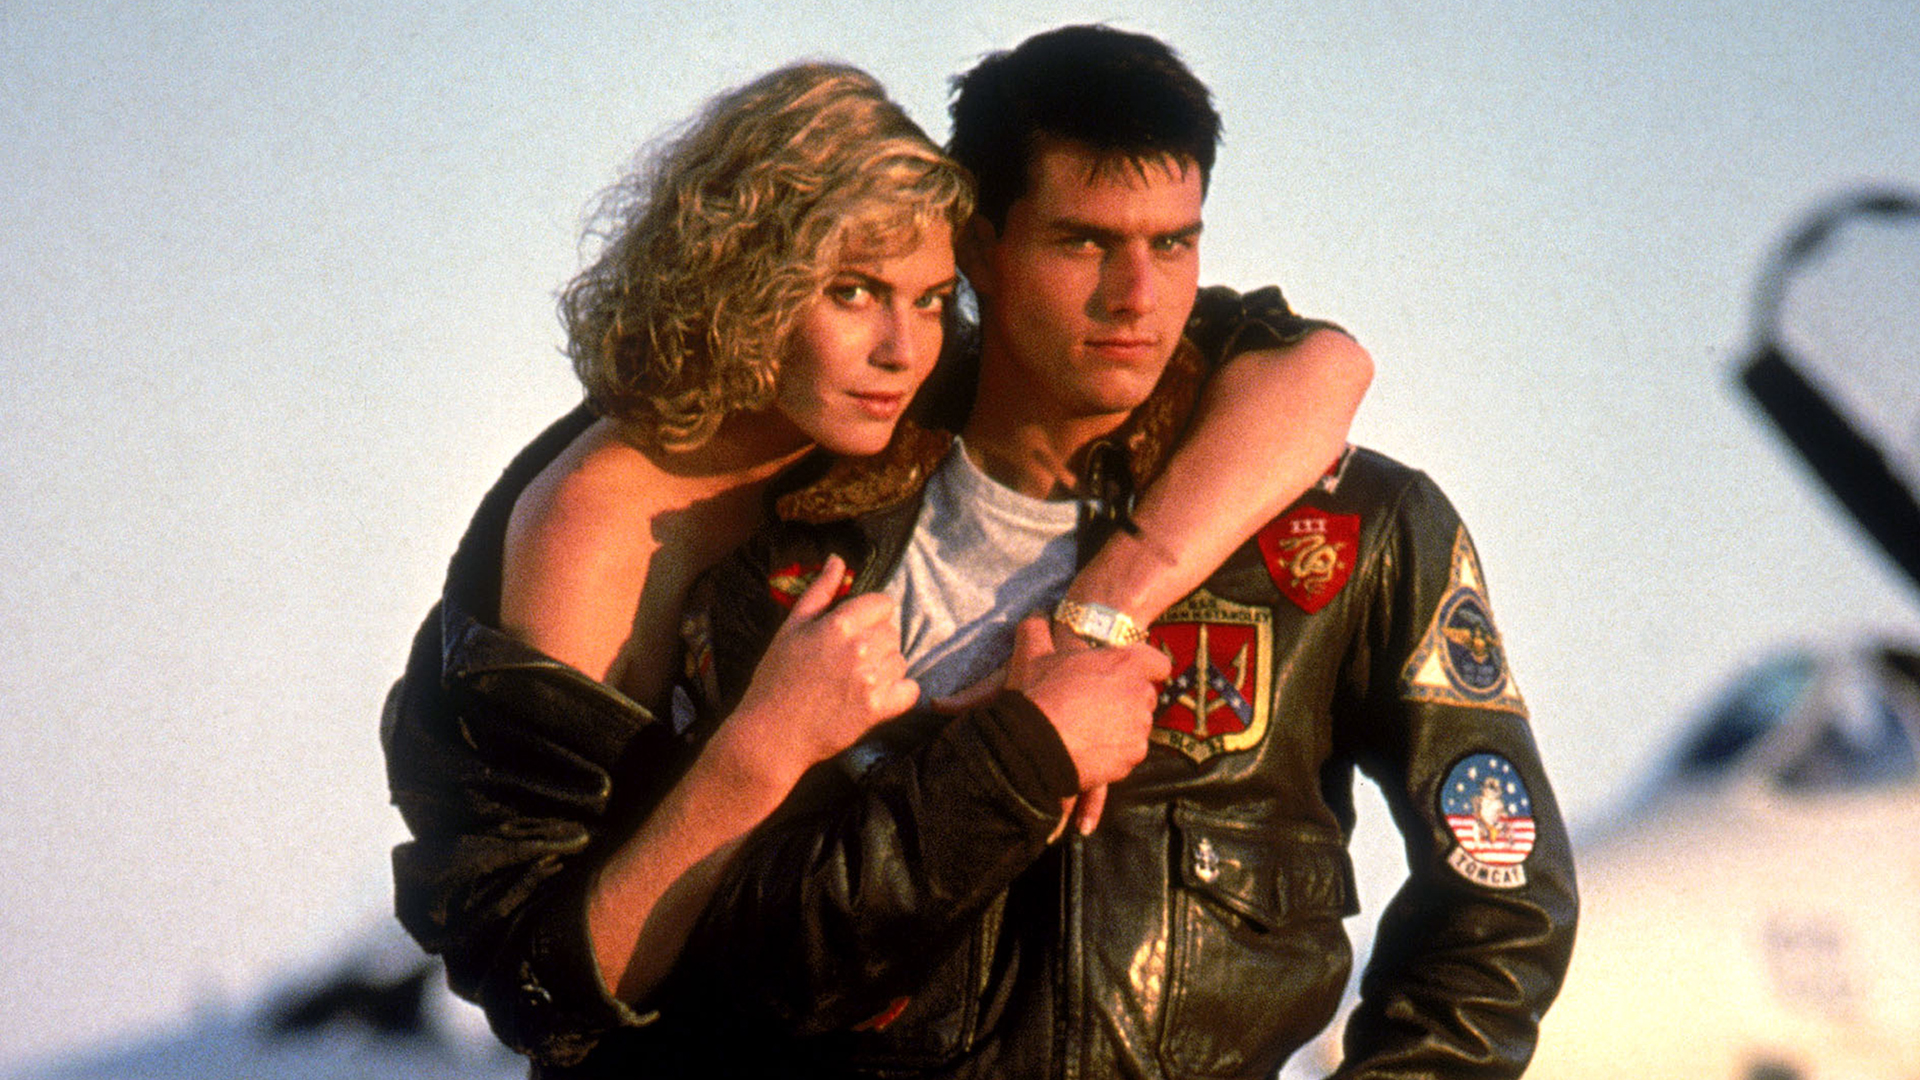 'Top Gun' turns 30: 8 facts about the hit Tom Cruise movie - TODAY.com